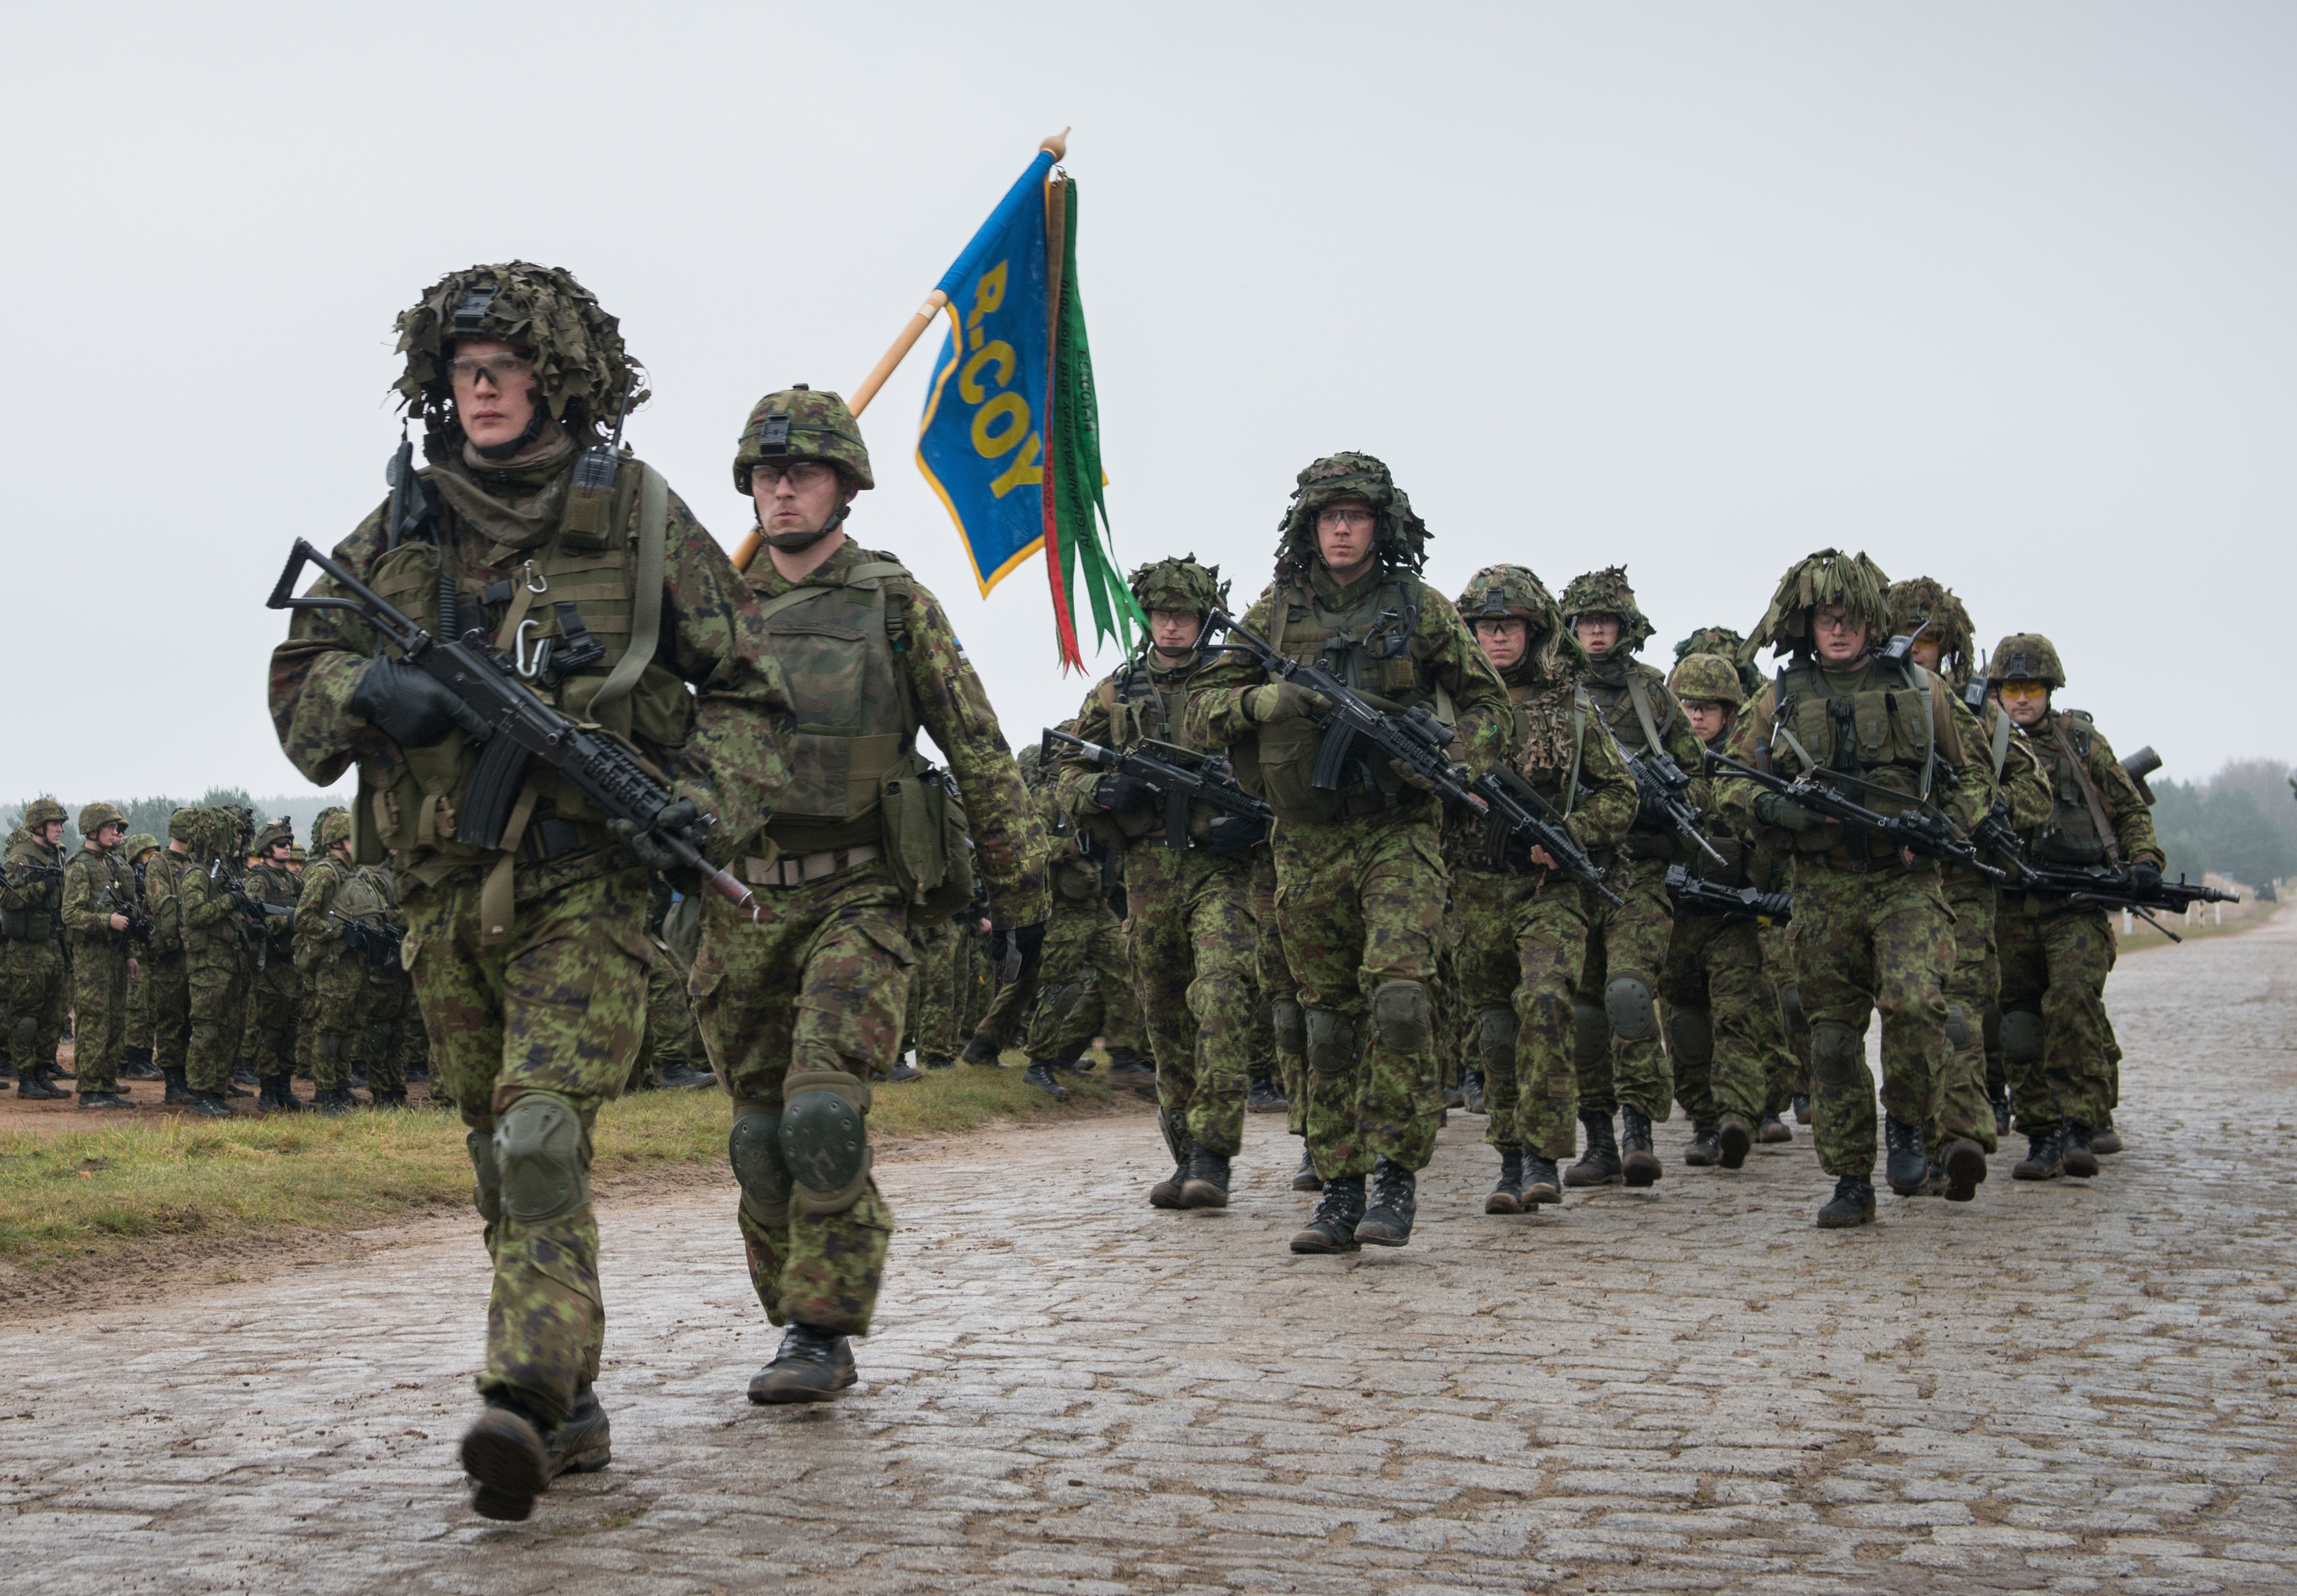 Estonian troops conduct a march past during the Opening Ceremony for Ex STEADFAST JAZZ on the Drawsko Pomorskie Training Area, Poland, on Nov. 3, 2013. NATO Photo